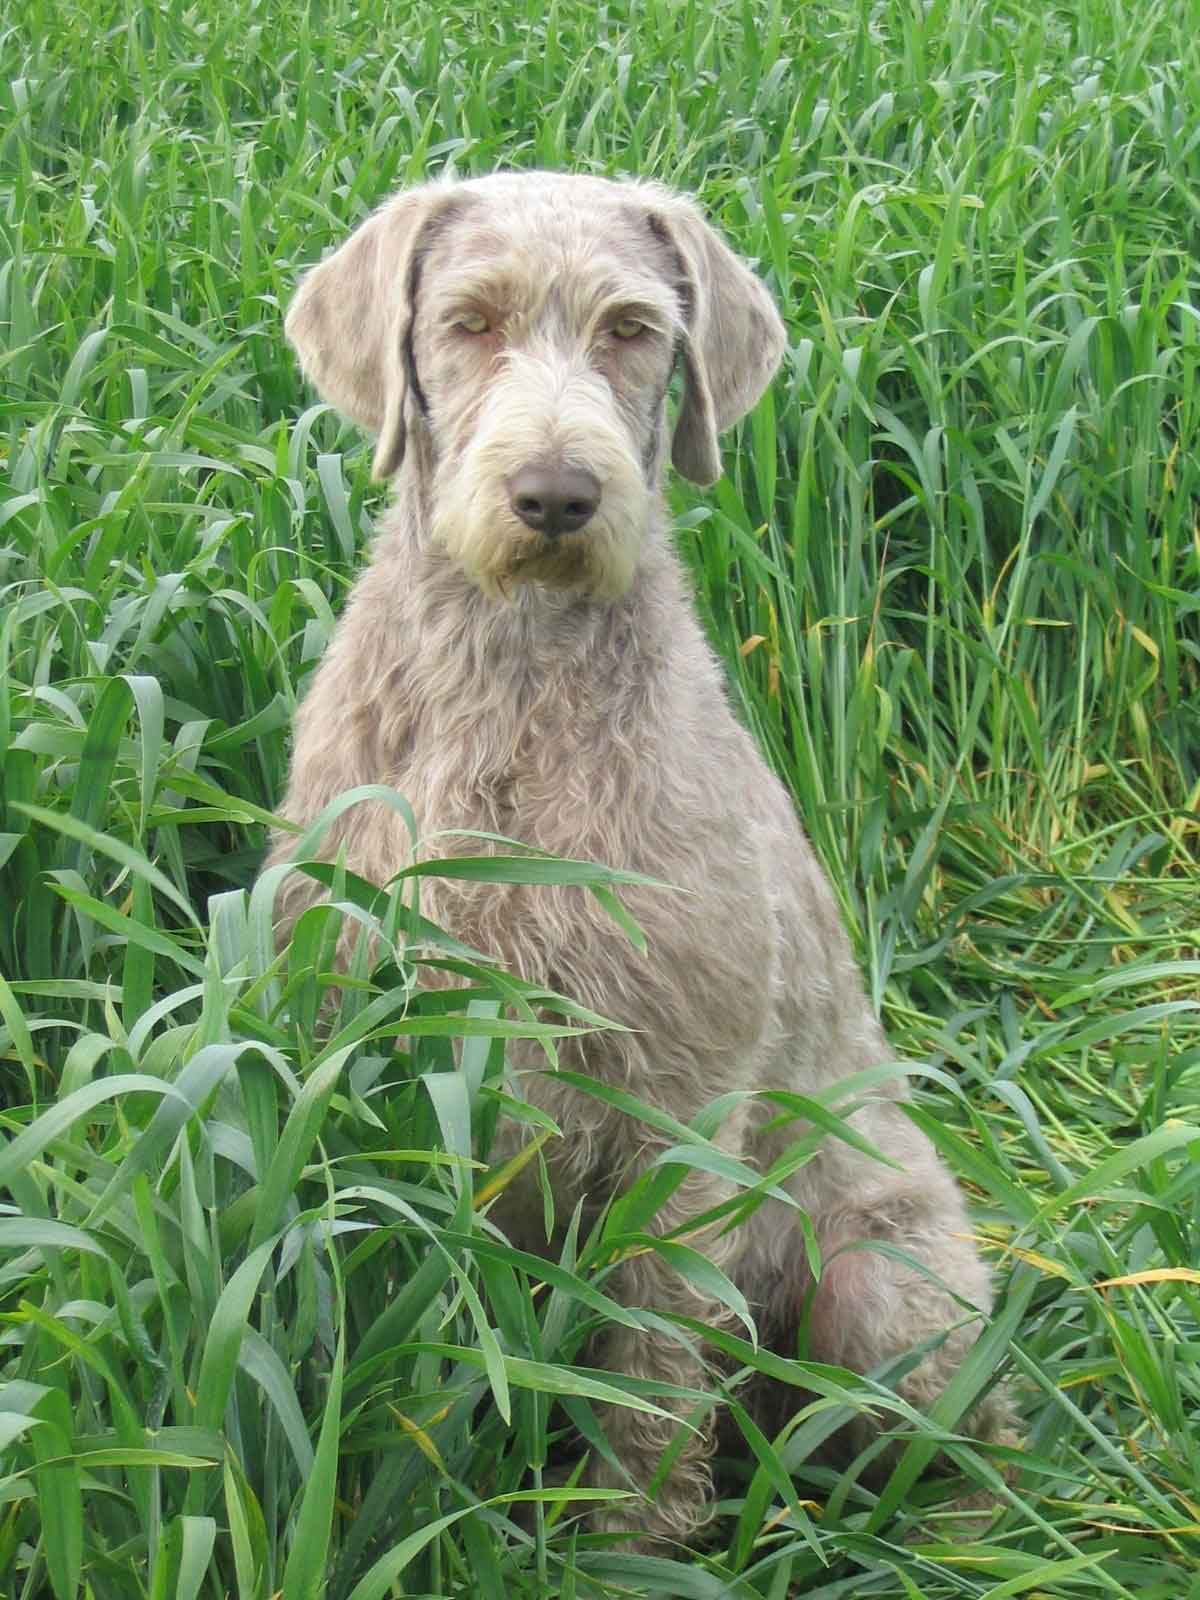 Slovakian Wirehaired Pointers